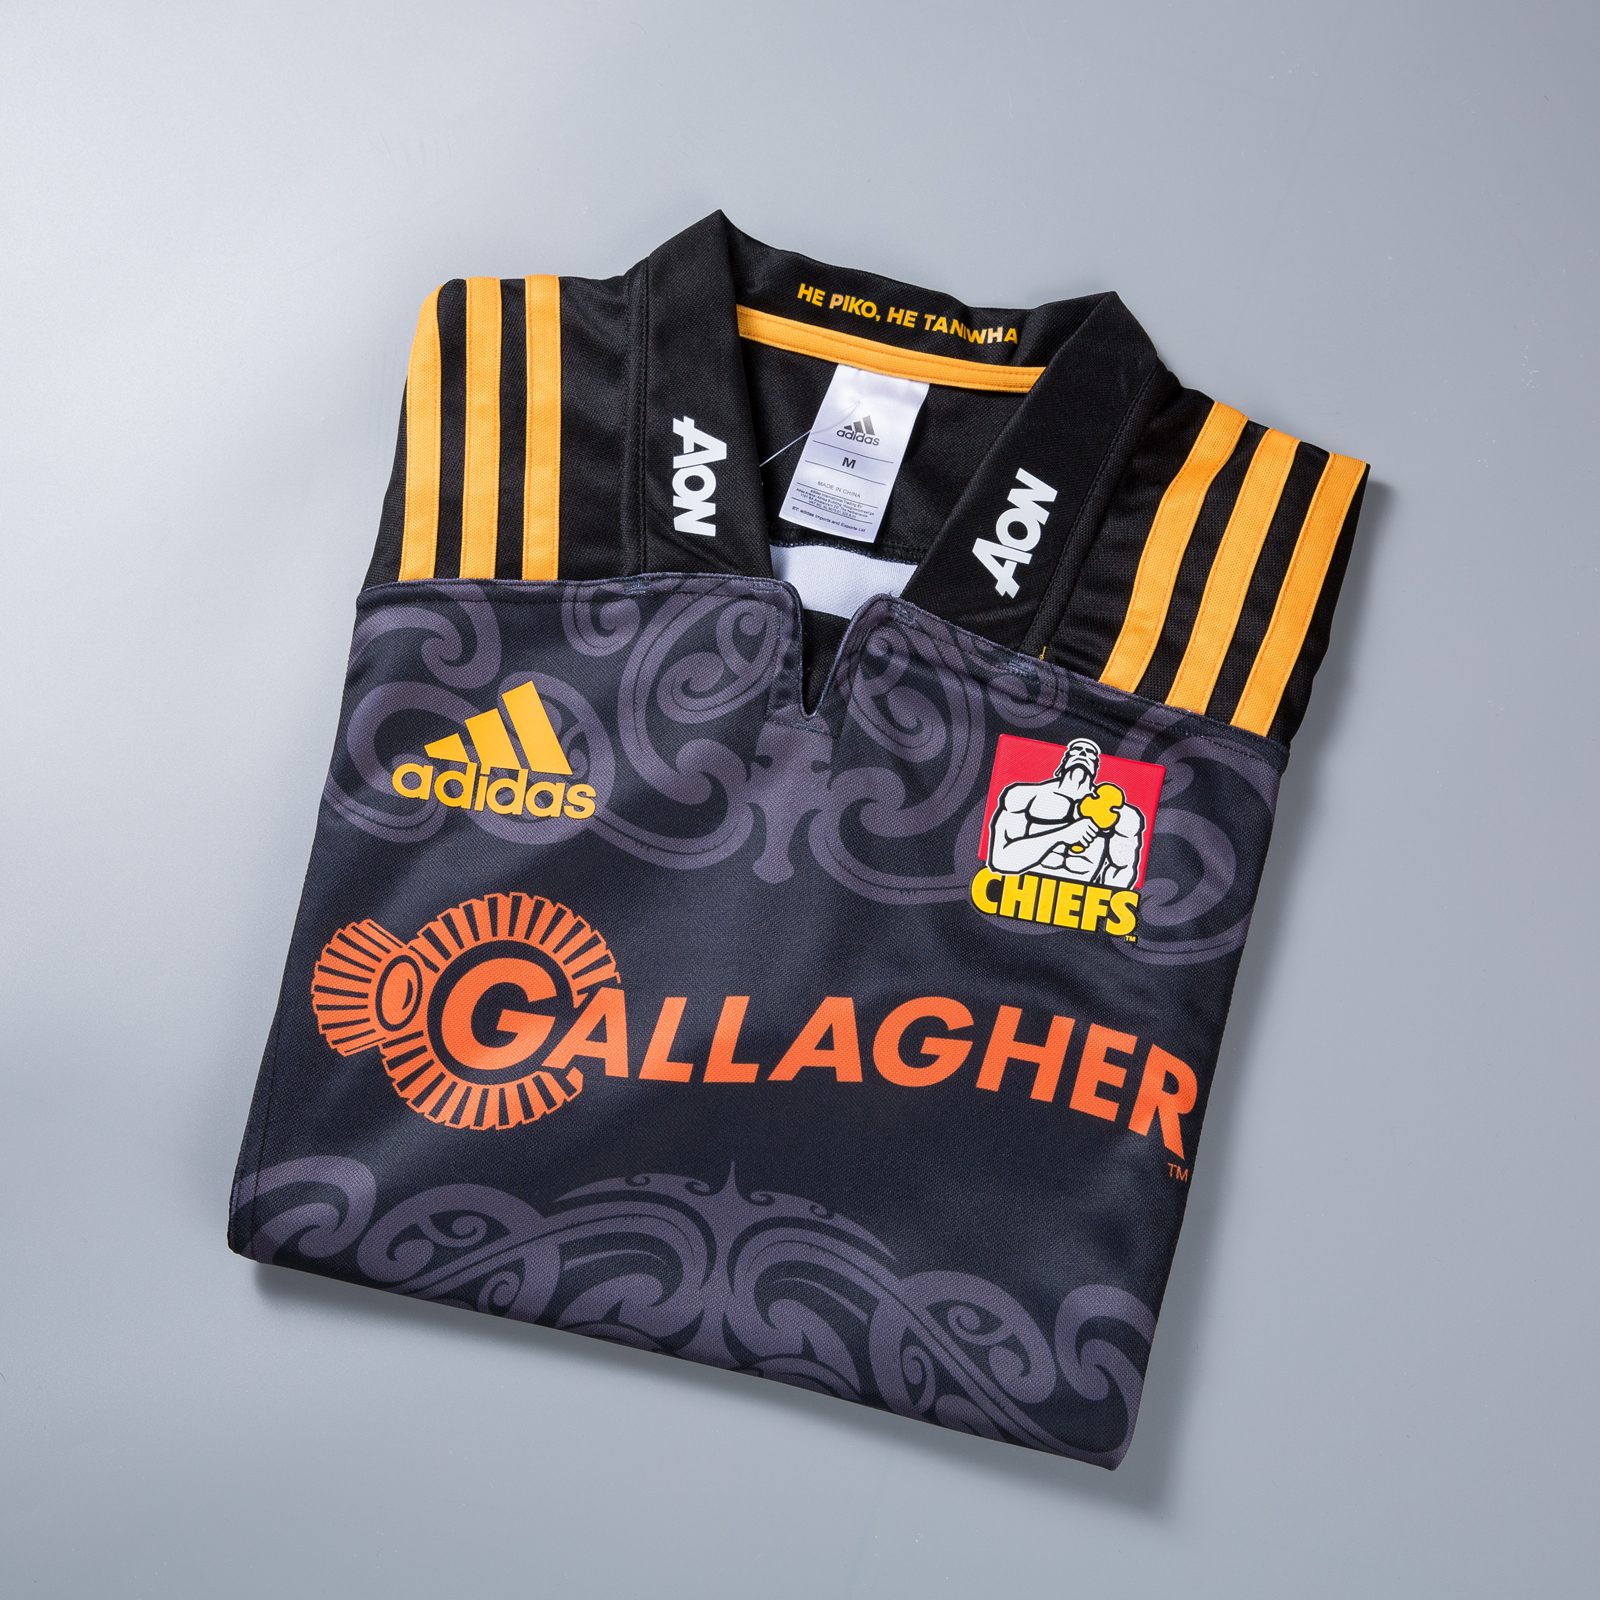 2018-chiefs-home-rugby-jersey-3.jpg